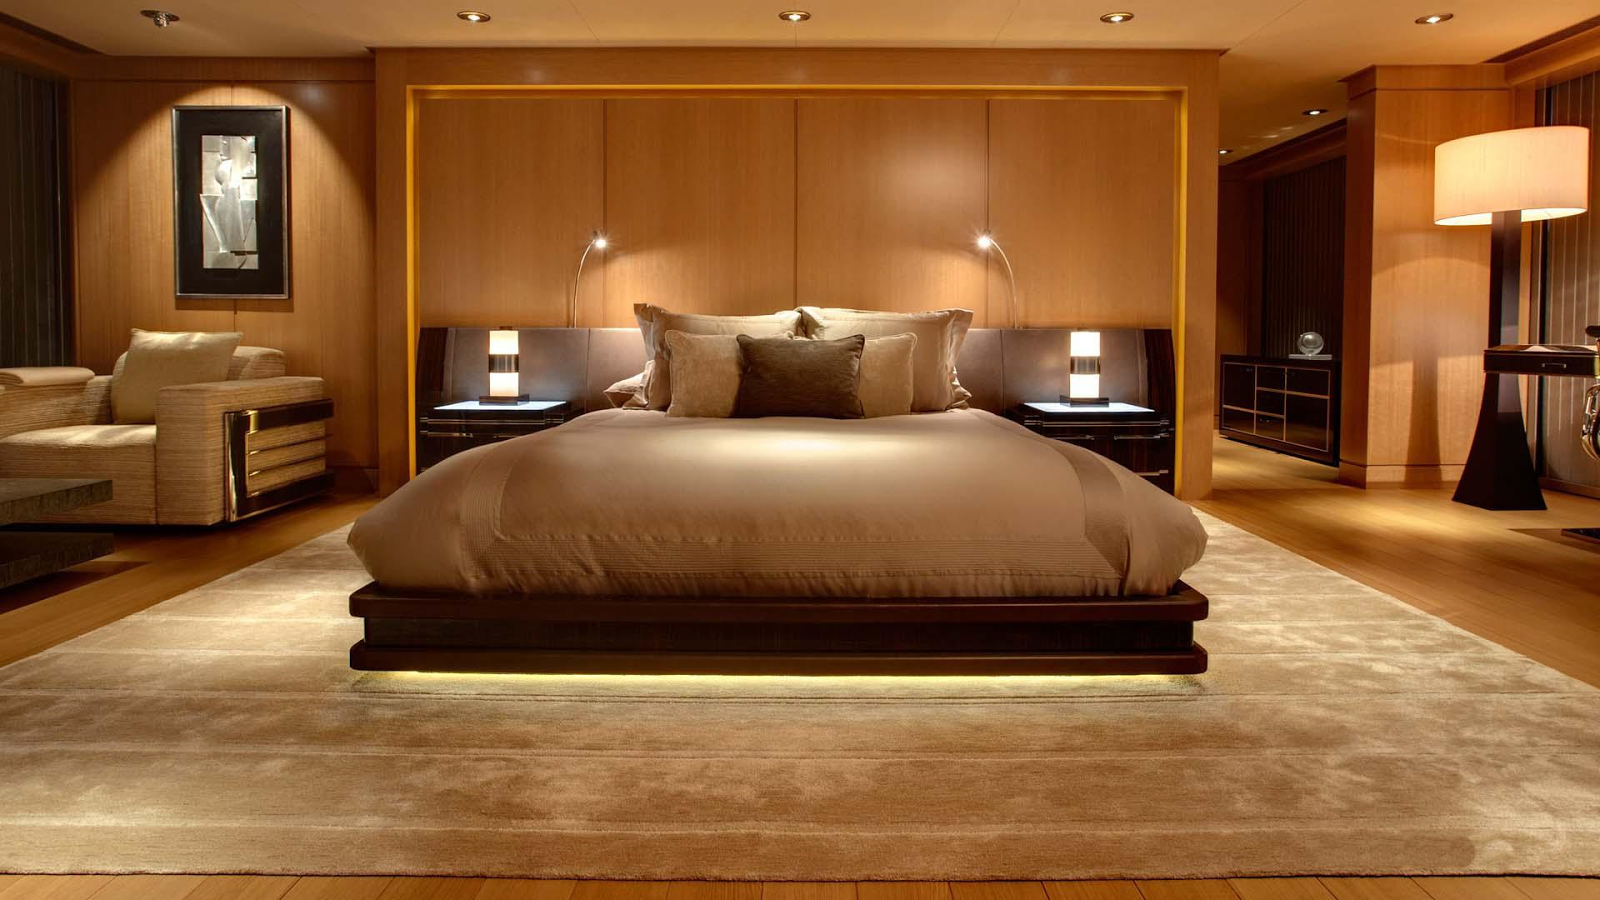 Bedroom Png Hd Transparent Bedroom Hd Png Images Pluspng